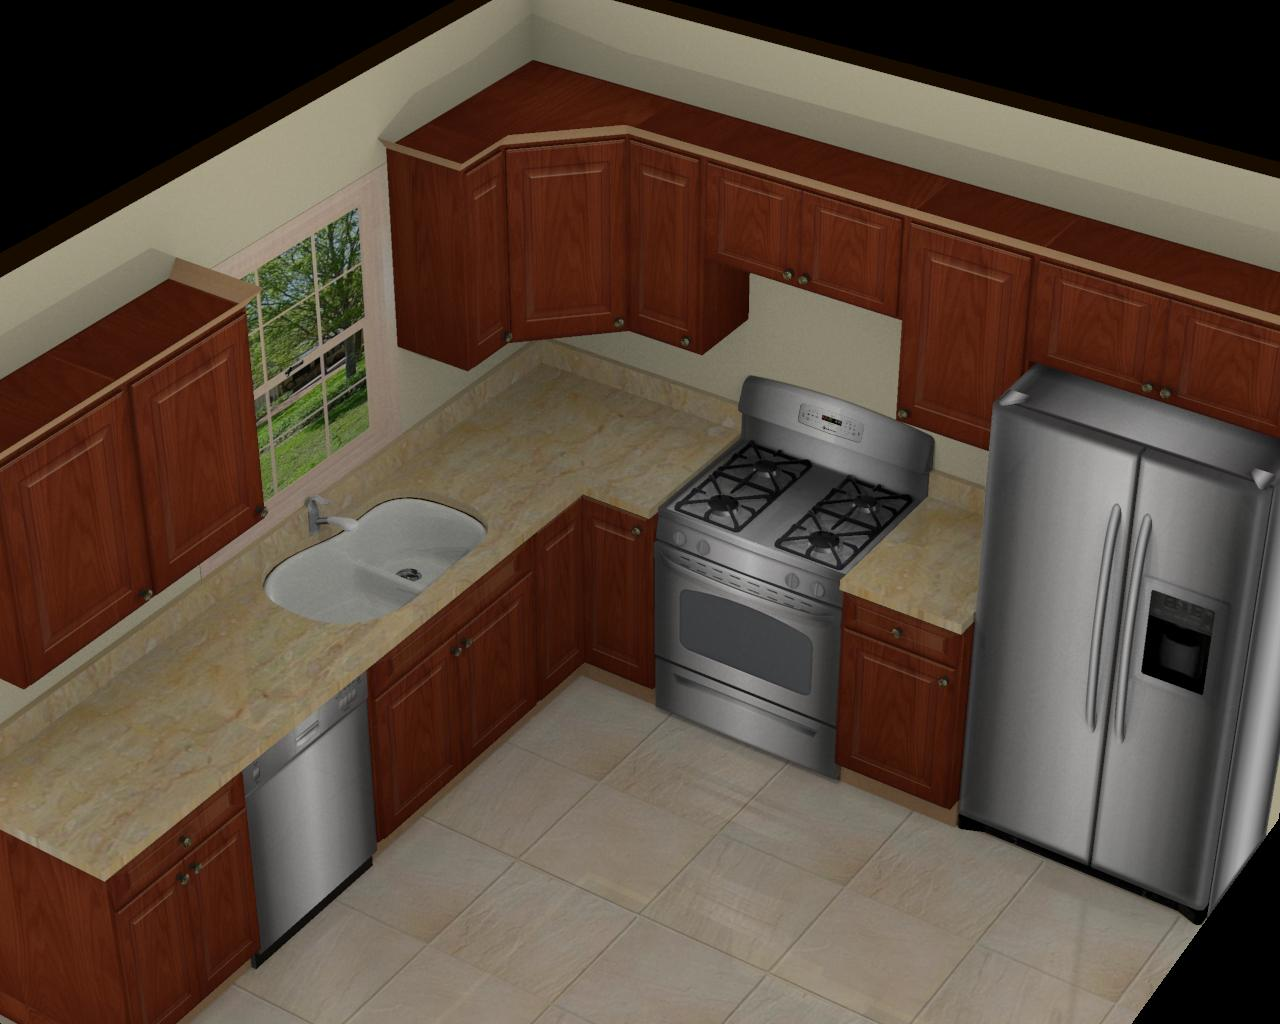 design your kitchen 3d foundation dezin amp decor 3d kitchen model design 298